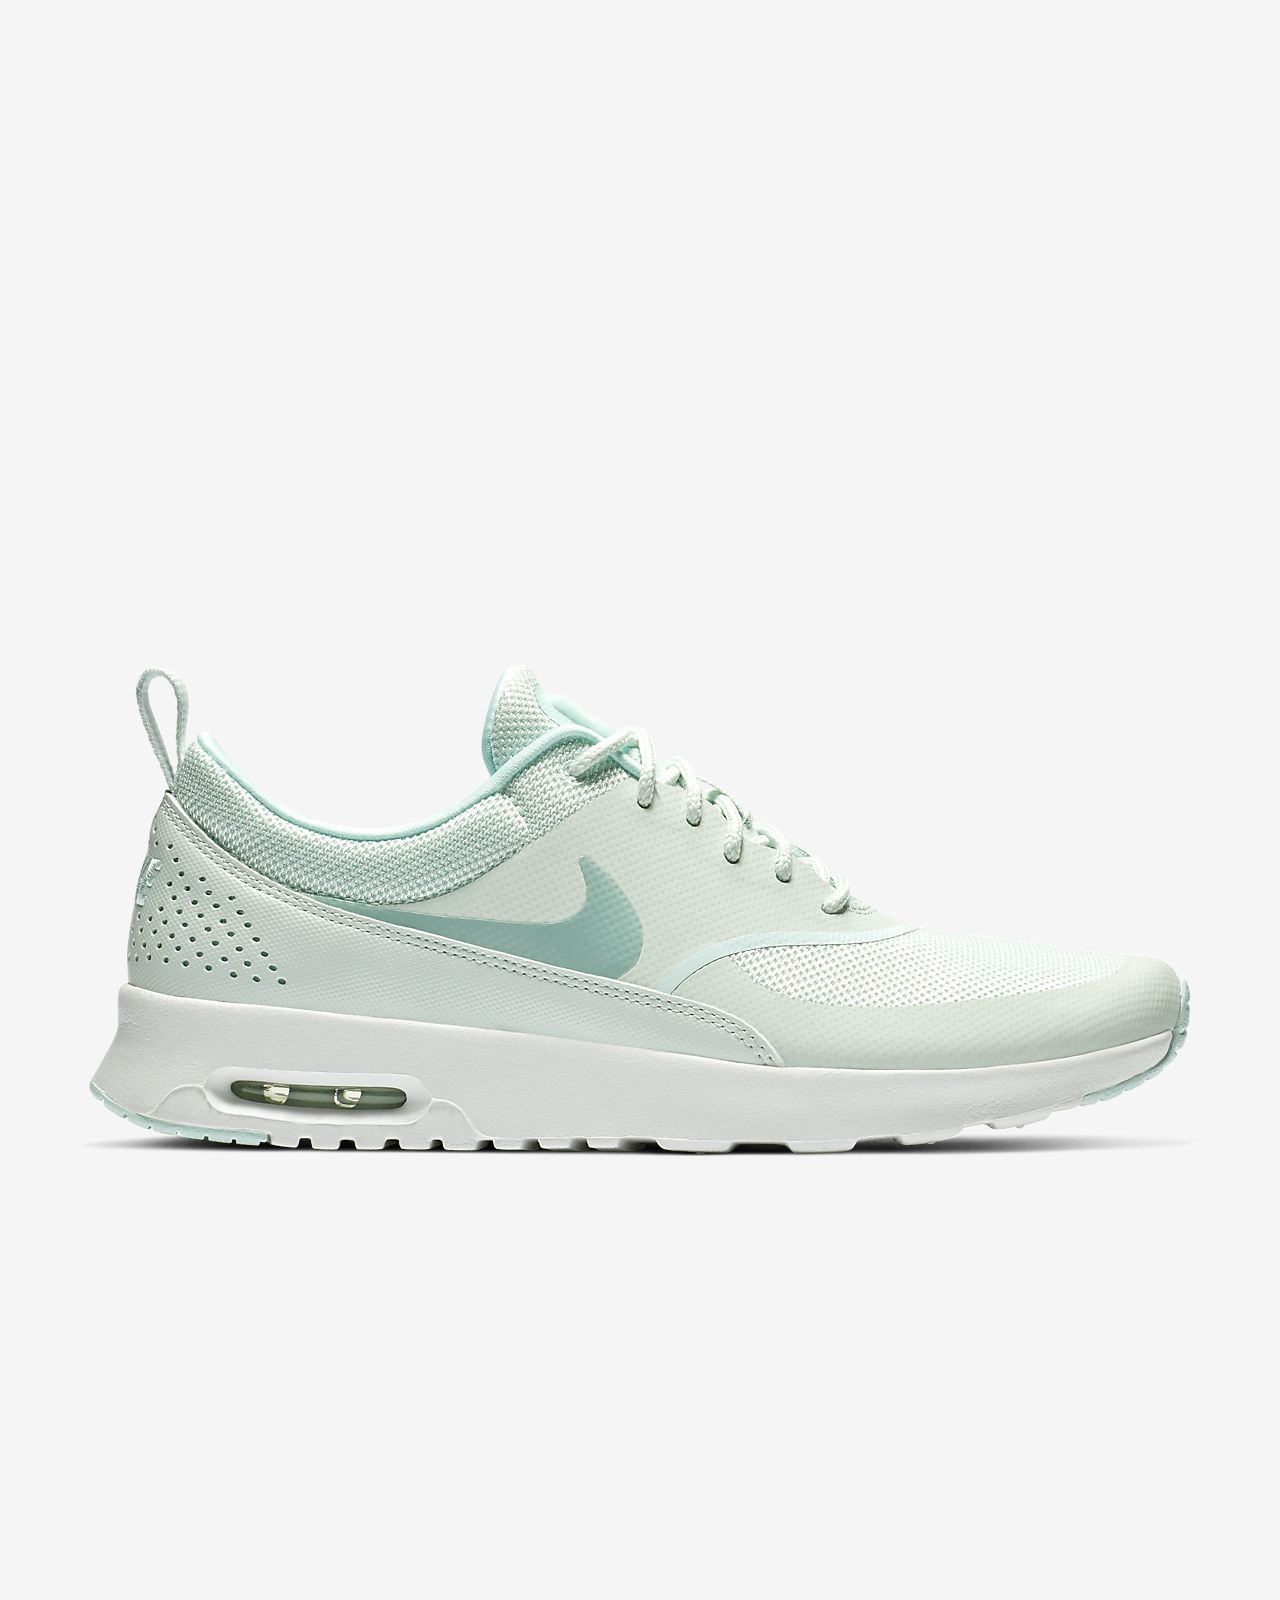 reputable site 966c5 10741 ... Nike Air Max Thea Women s Shoe